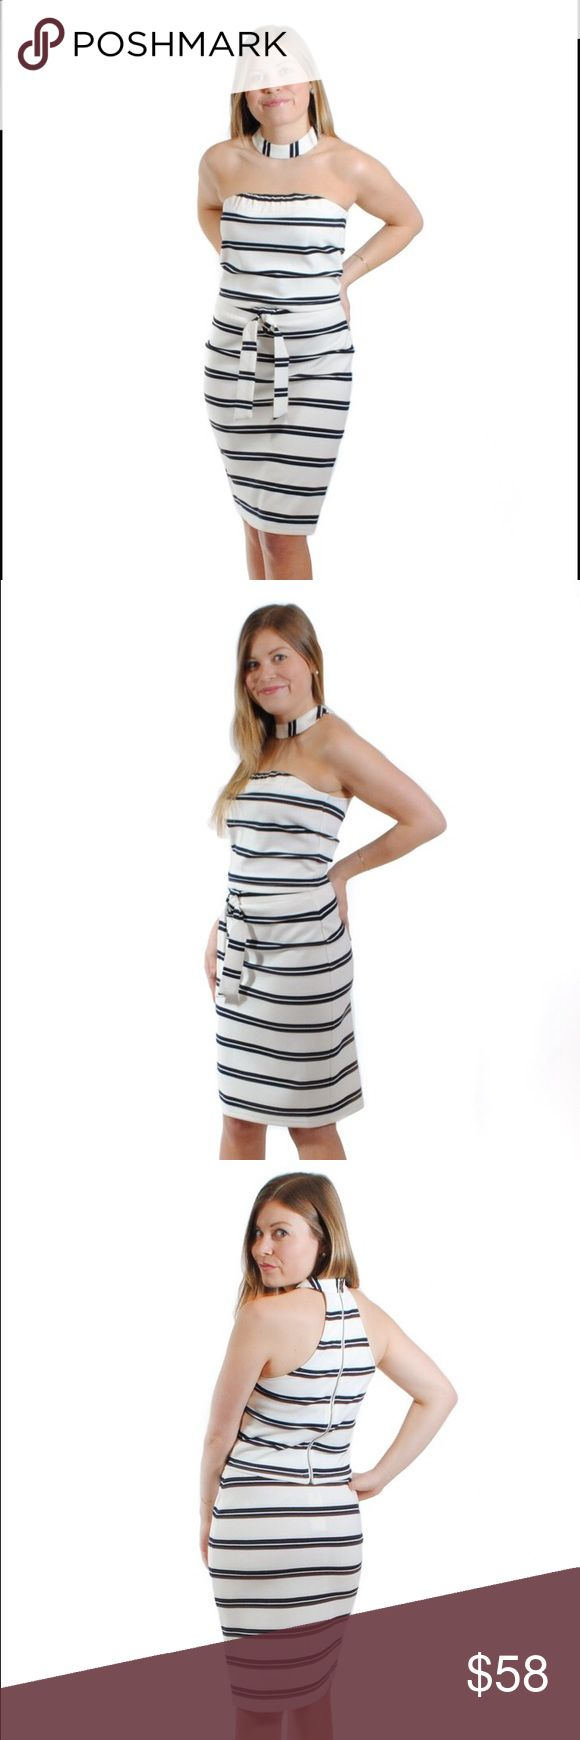 Jeanne Set Watch the sunset over the harbor with this nautical summer set! The navy blue and white skirt features a tie waist and the top has a racerback and collar neckline. Feel secure with the zipper back closure. Pair with your understated single-strap heeled sandal for a classic look!  54% Rayon, 43% Polyester, 3% Spandex  size + fit: Model is 5ft 3in and wearing a size small. Fit runs true to size. Other